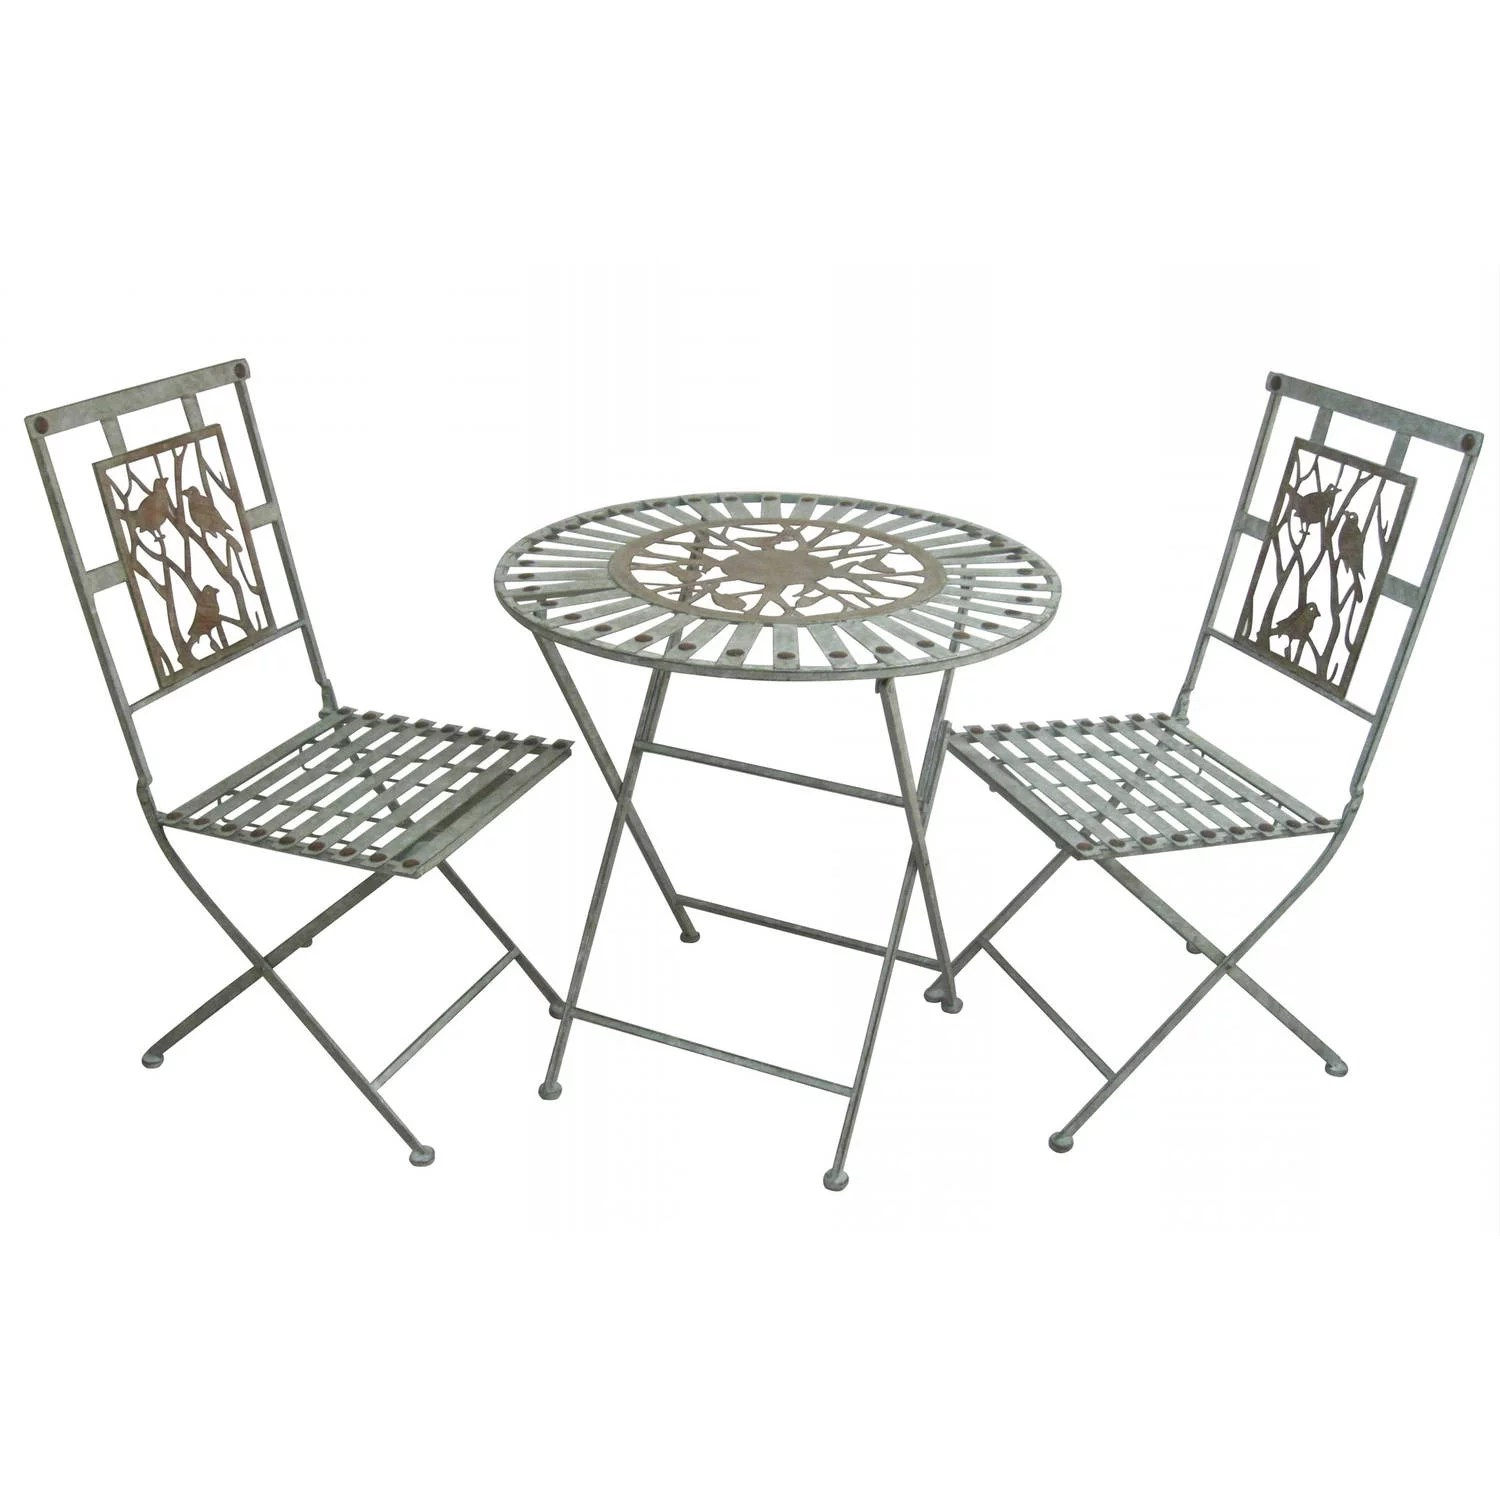 Birds on Branches Bistro Set of 1 Table and 2 Chairs